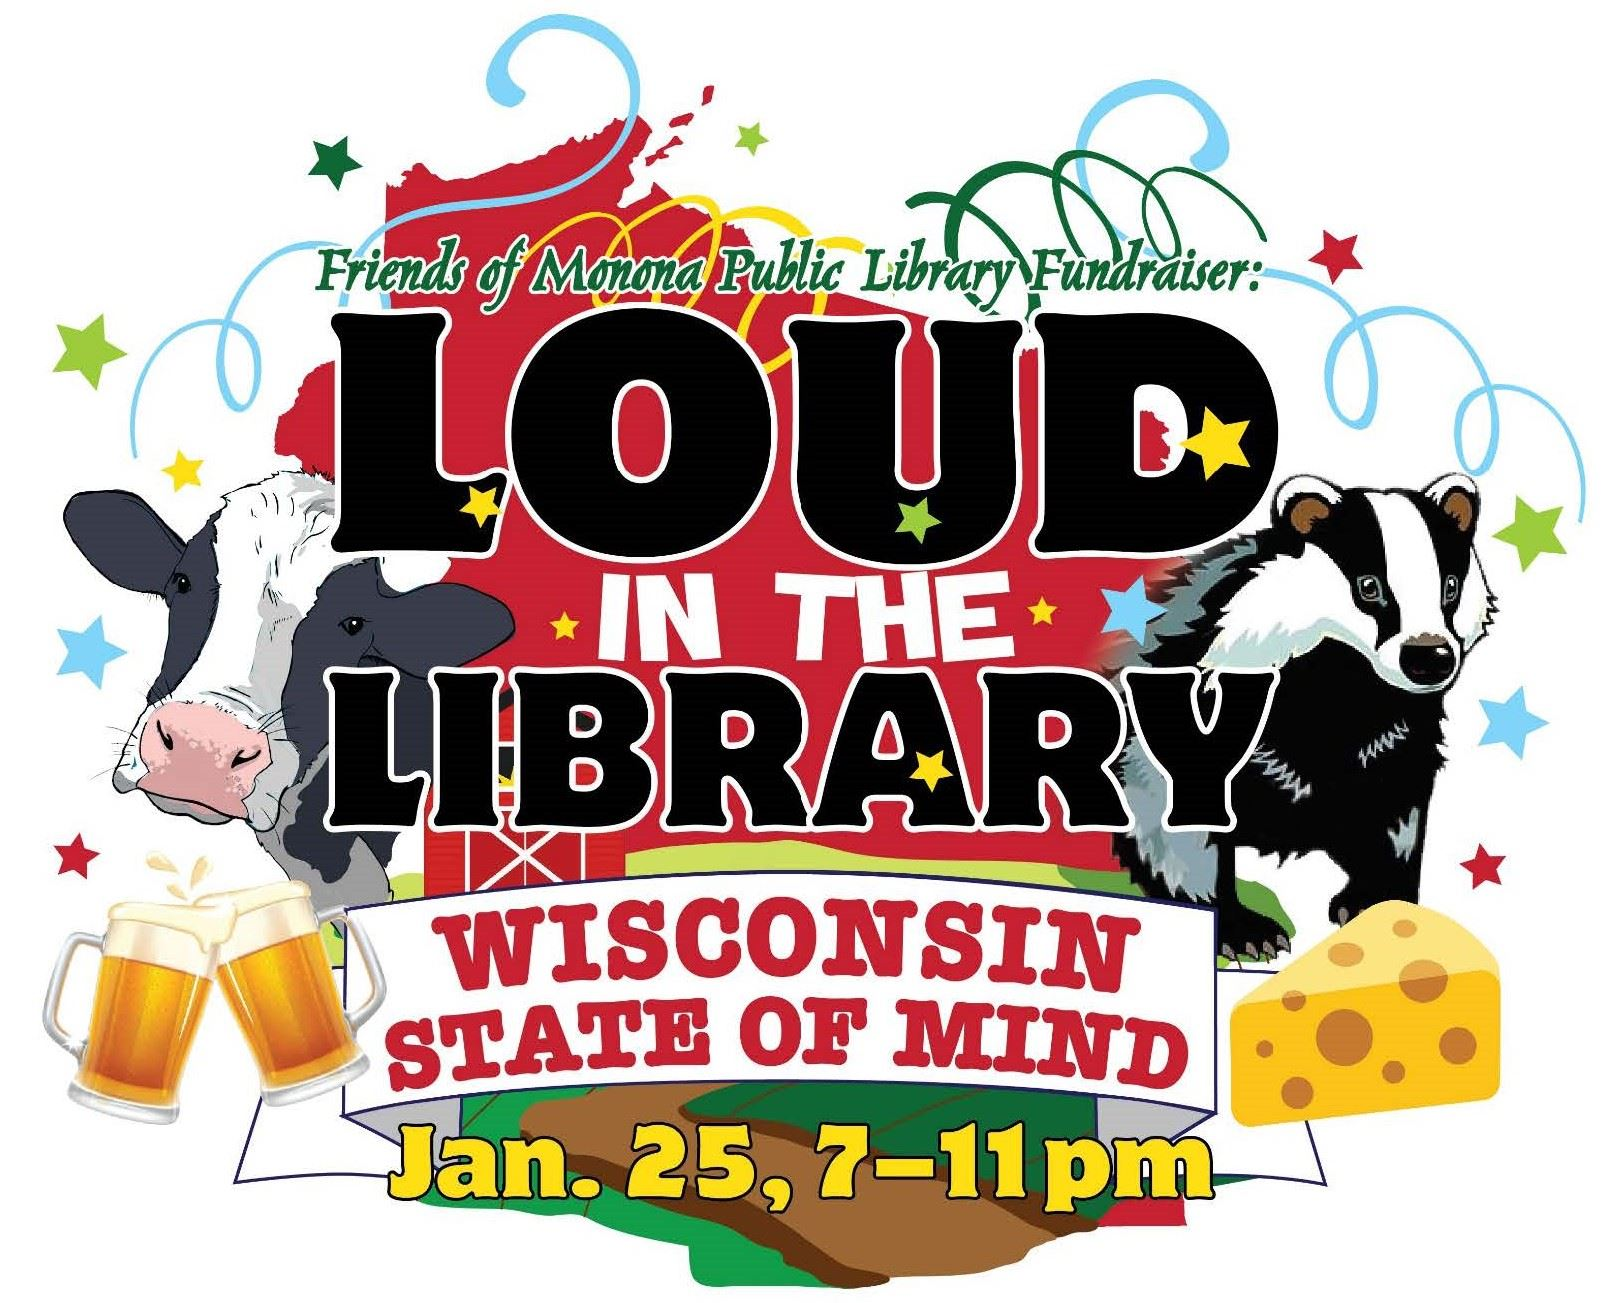 Loud in Library Fundraiser graphic Wisconsin State of Mind Jan. 25, 7-11 pm